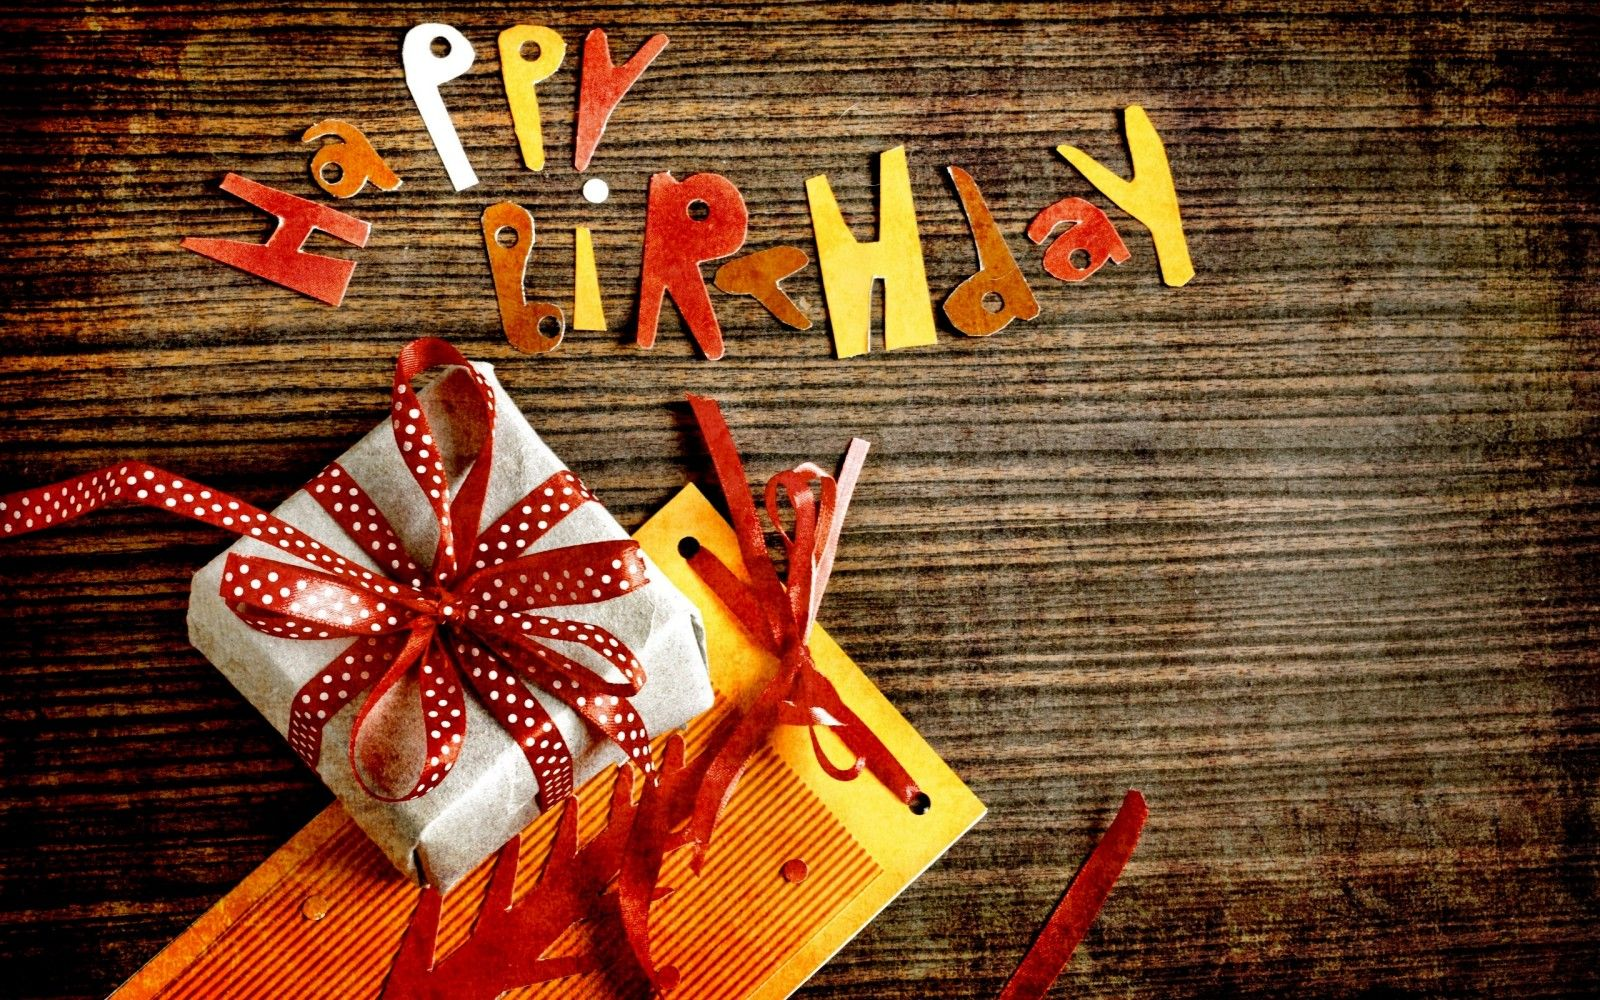 Hd wallpaper birthday - Happy Birthday Gift Images Hd Wallpaper Of Greeting